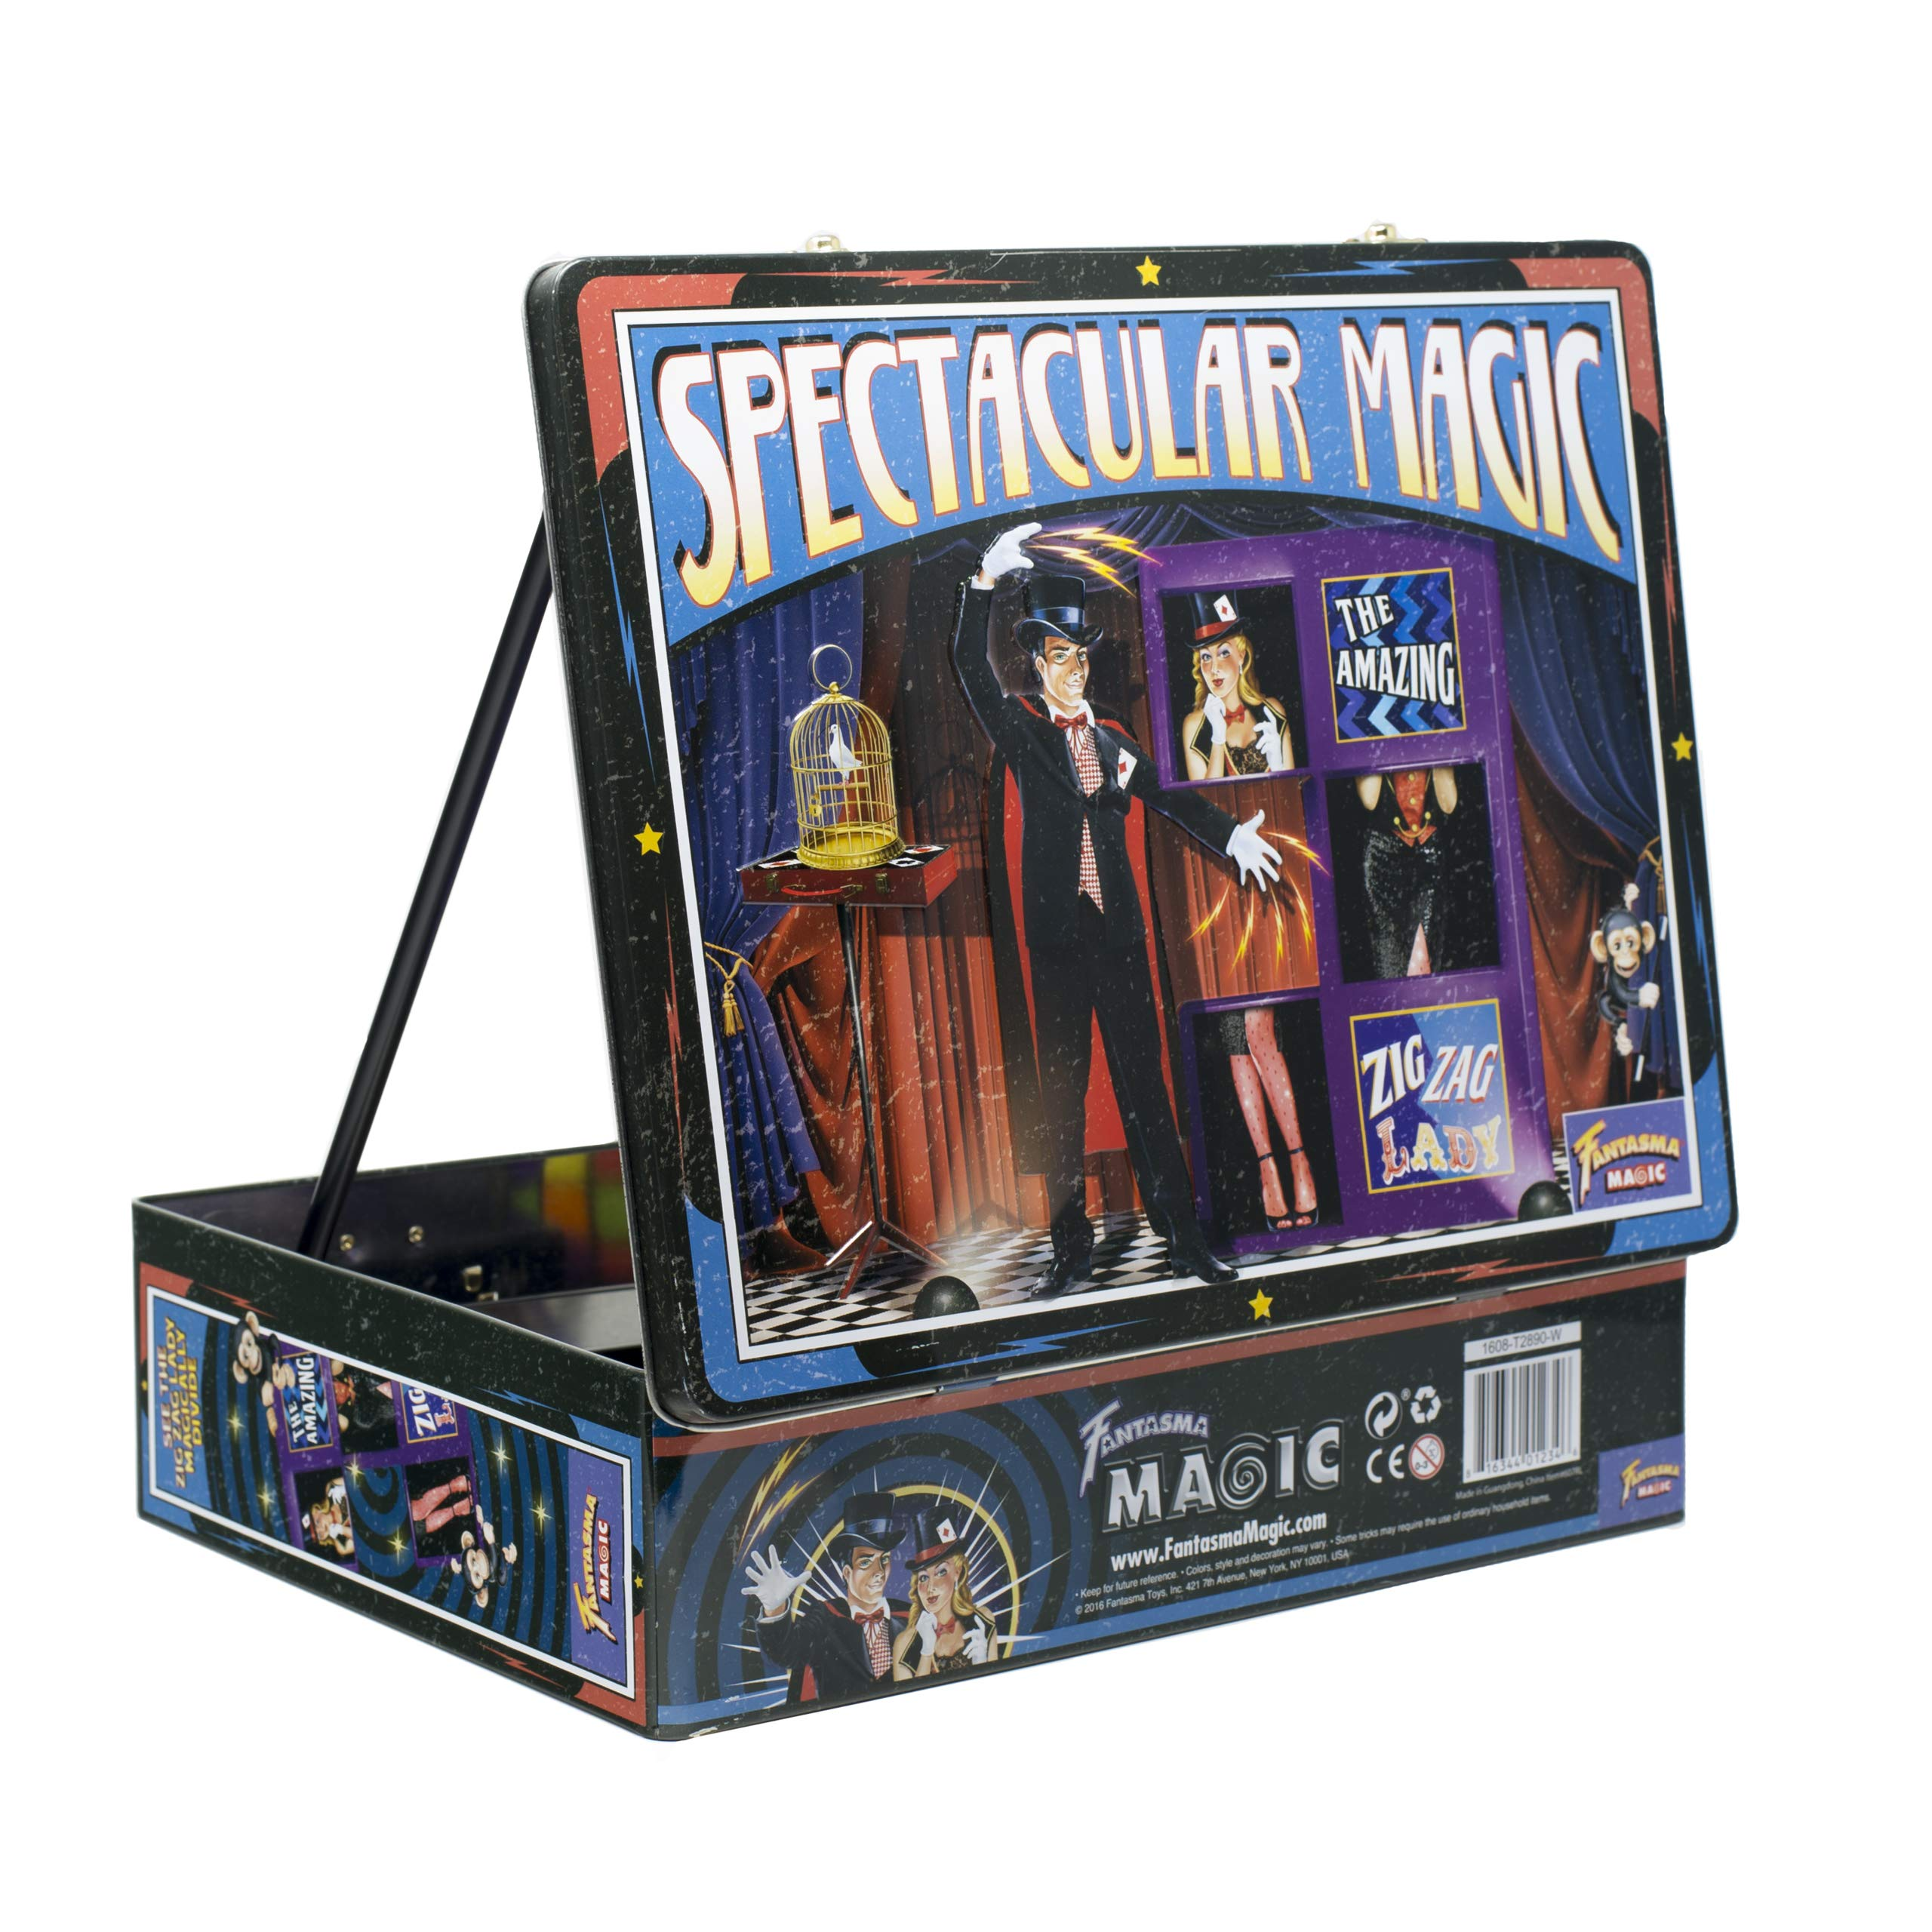 Fantasma Spectacular Magic Box Set for Kids - Magic Kit and Card Trick - Learn 135 Magic Tricks - Great for Boys and Girls 7 Years and Older        by Fantasma (Image #6)